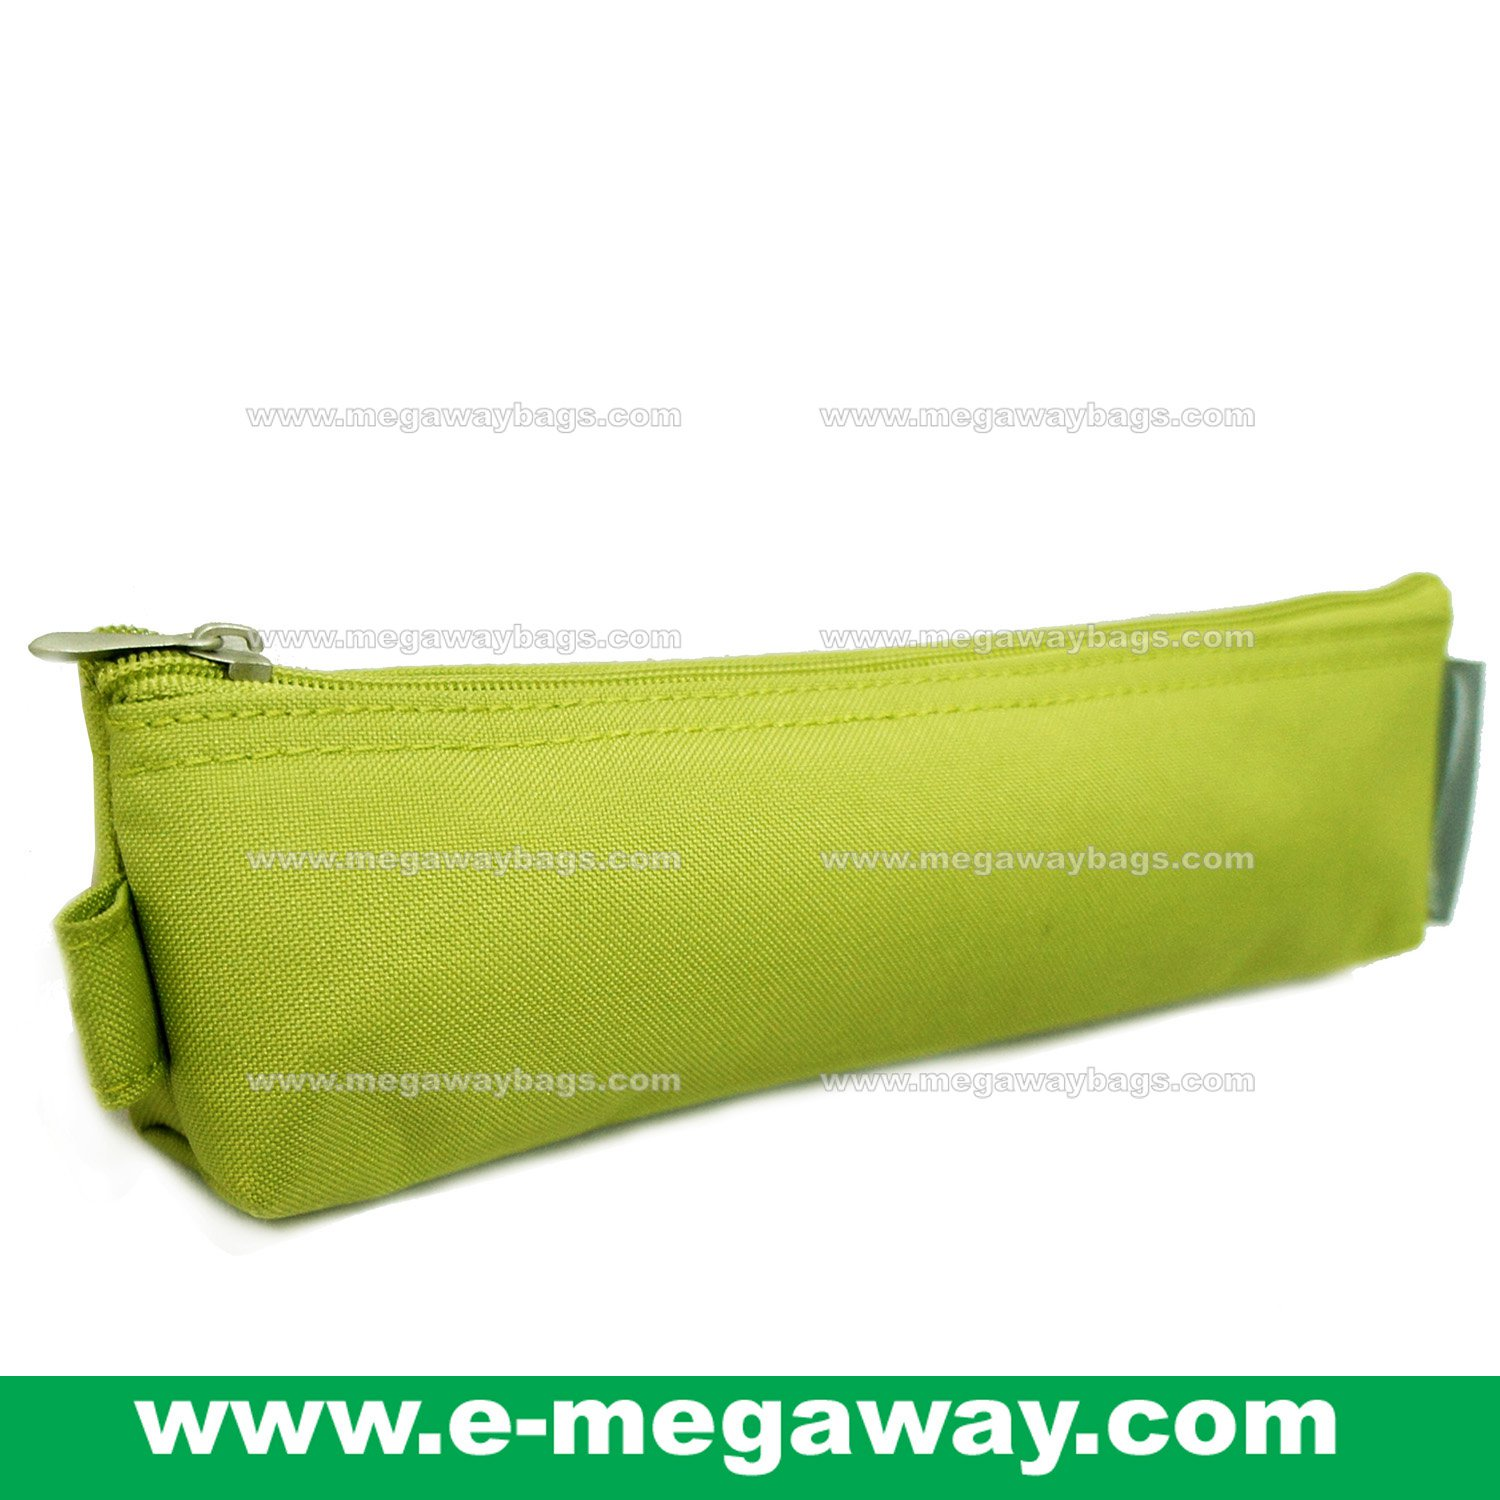 Quintessential Pen Pencil Wallet Pouch Case Amenity Bags Sac Tools MegawayBags #CC- 0906